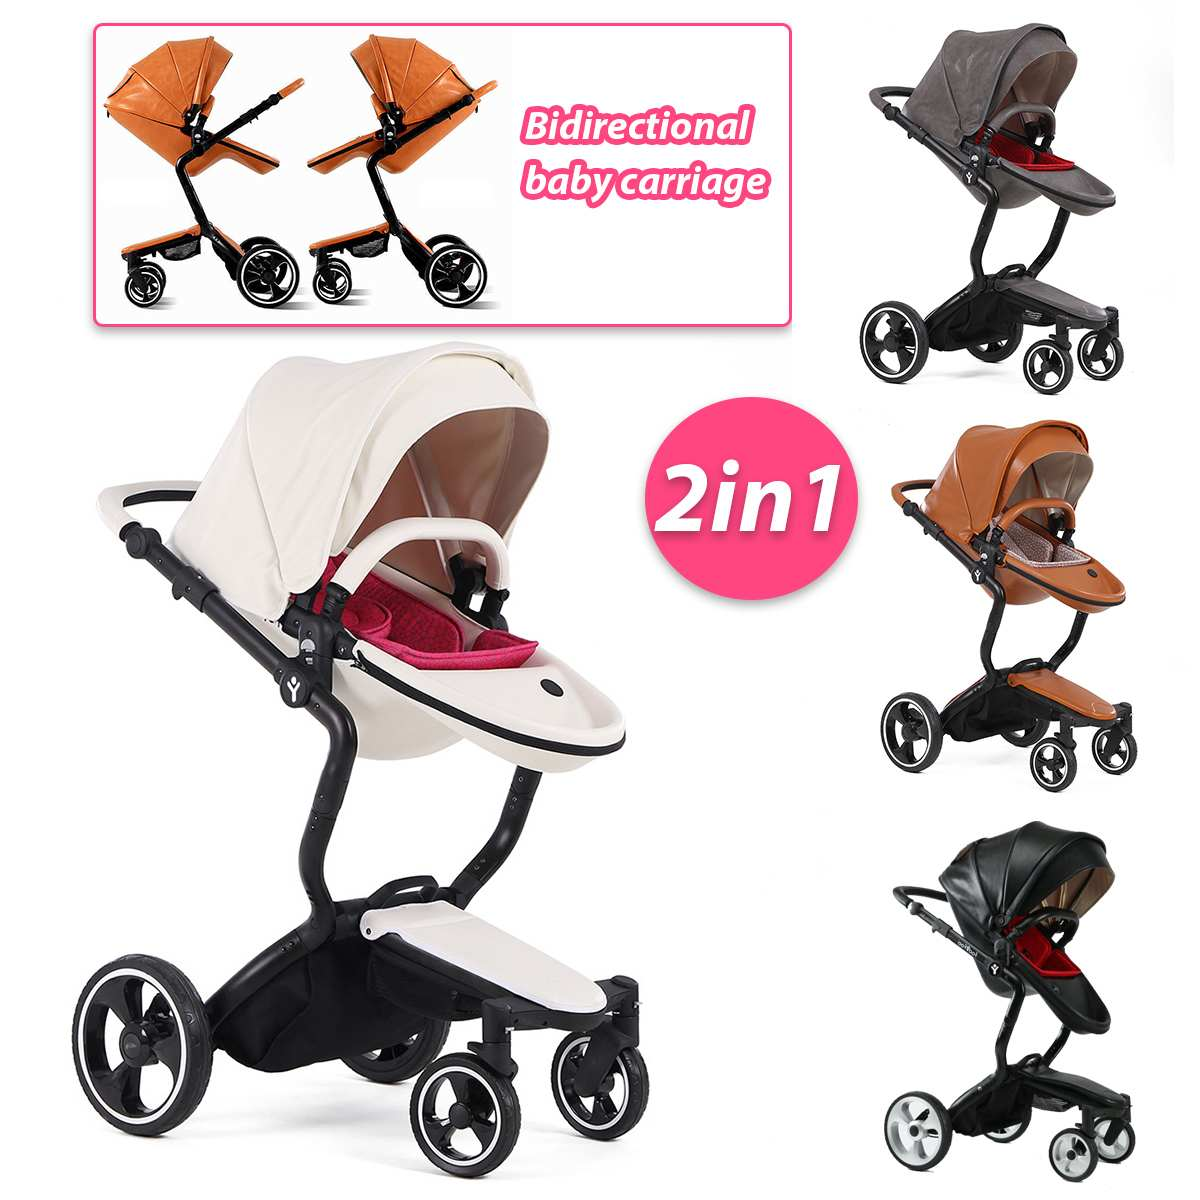 2 in 1 Multifunctional  Baby Foldable Stroller  Buggy Pram Kids Child Travel Pushchair Folding Hot Newborn2 in 1 Multifunctional  Baby Foldable Stroller  Buggy Pram Kids Child Travel Pushchair Folding Hot Newborn